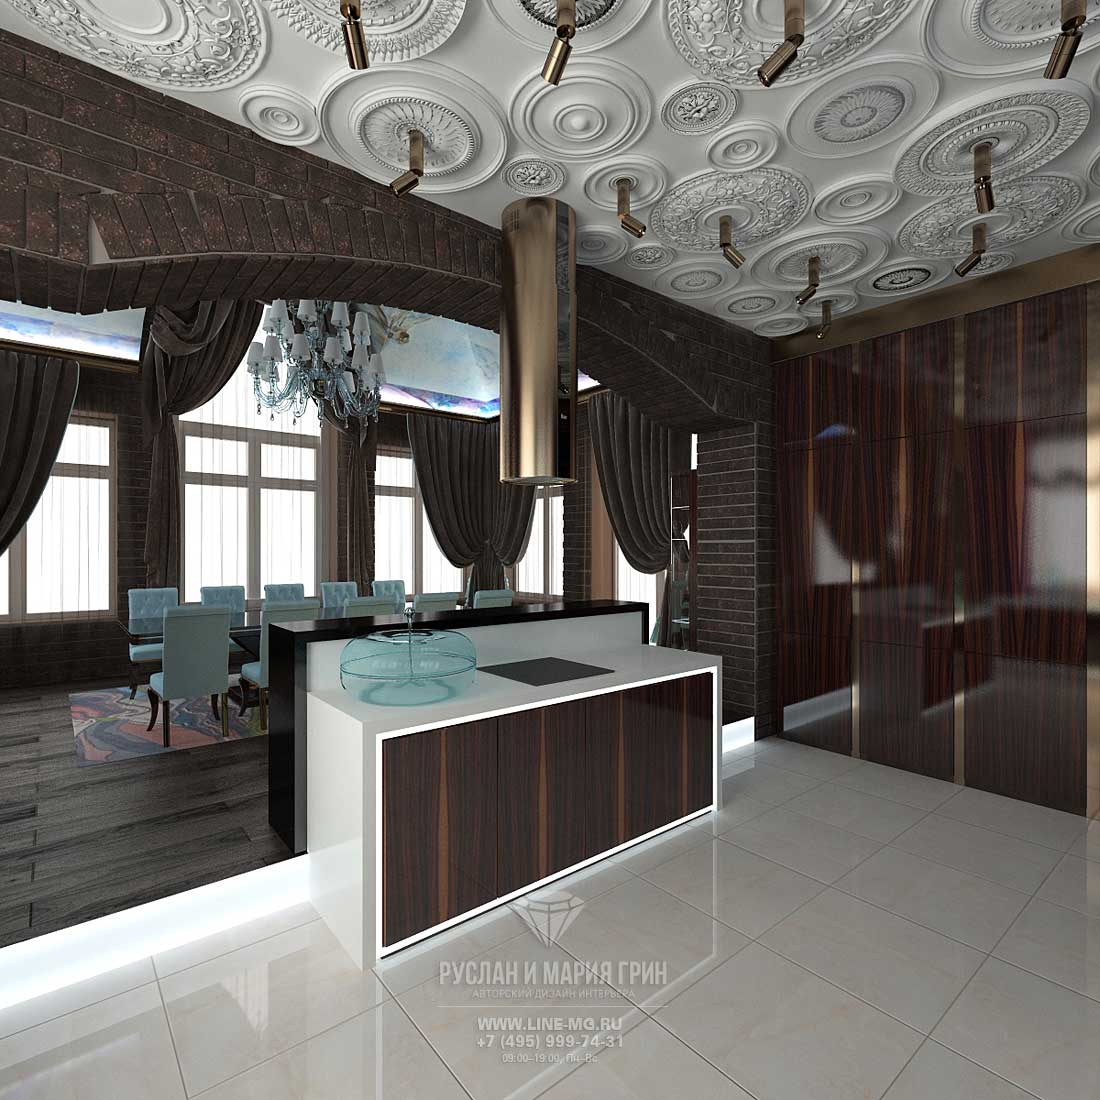 Kitchen design with a large number of rosettes on the ceiling